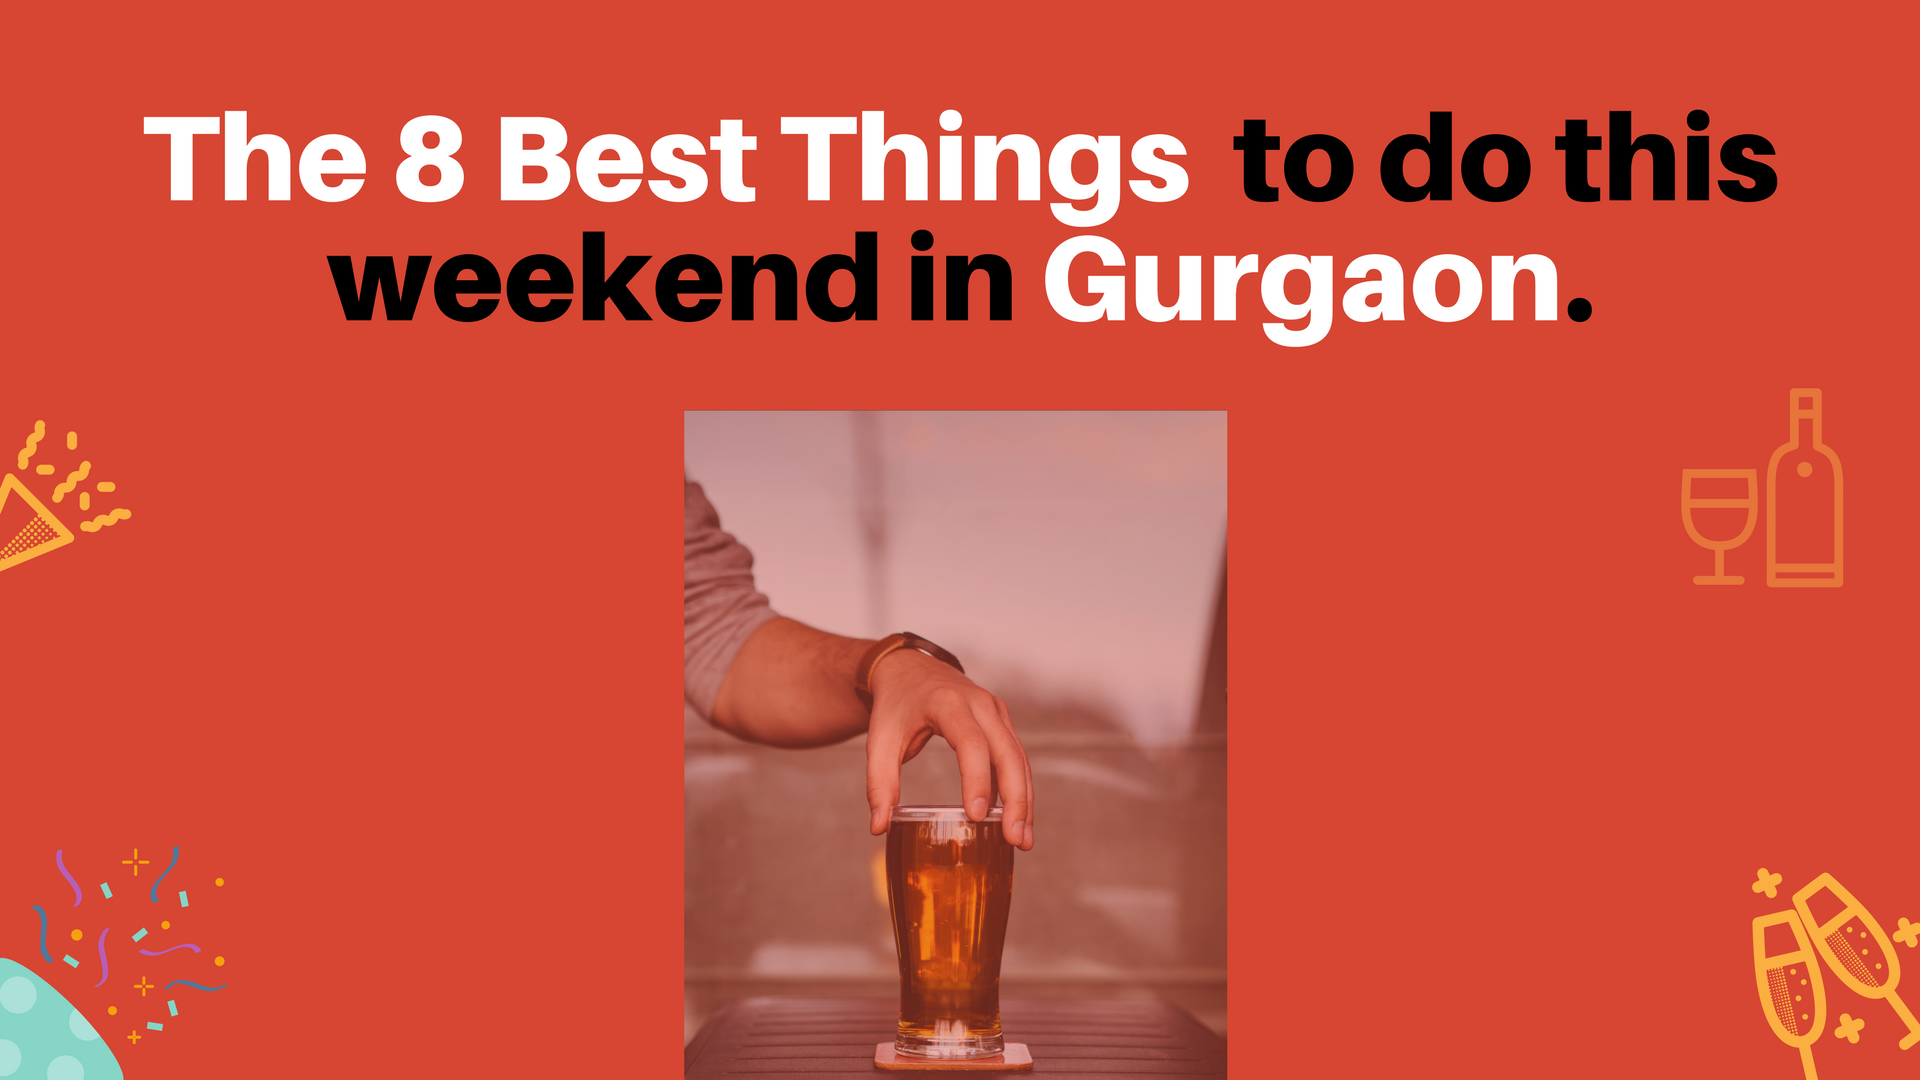 Things to Do This weekend in Gurgaon